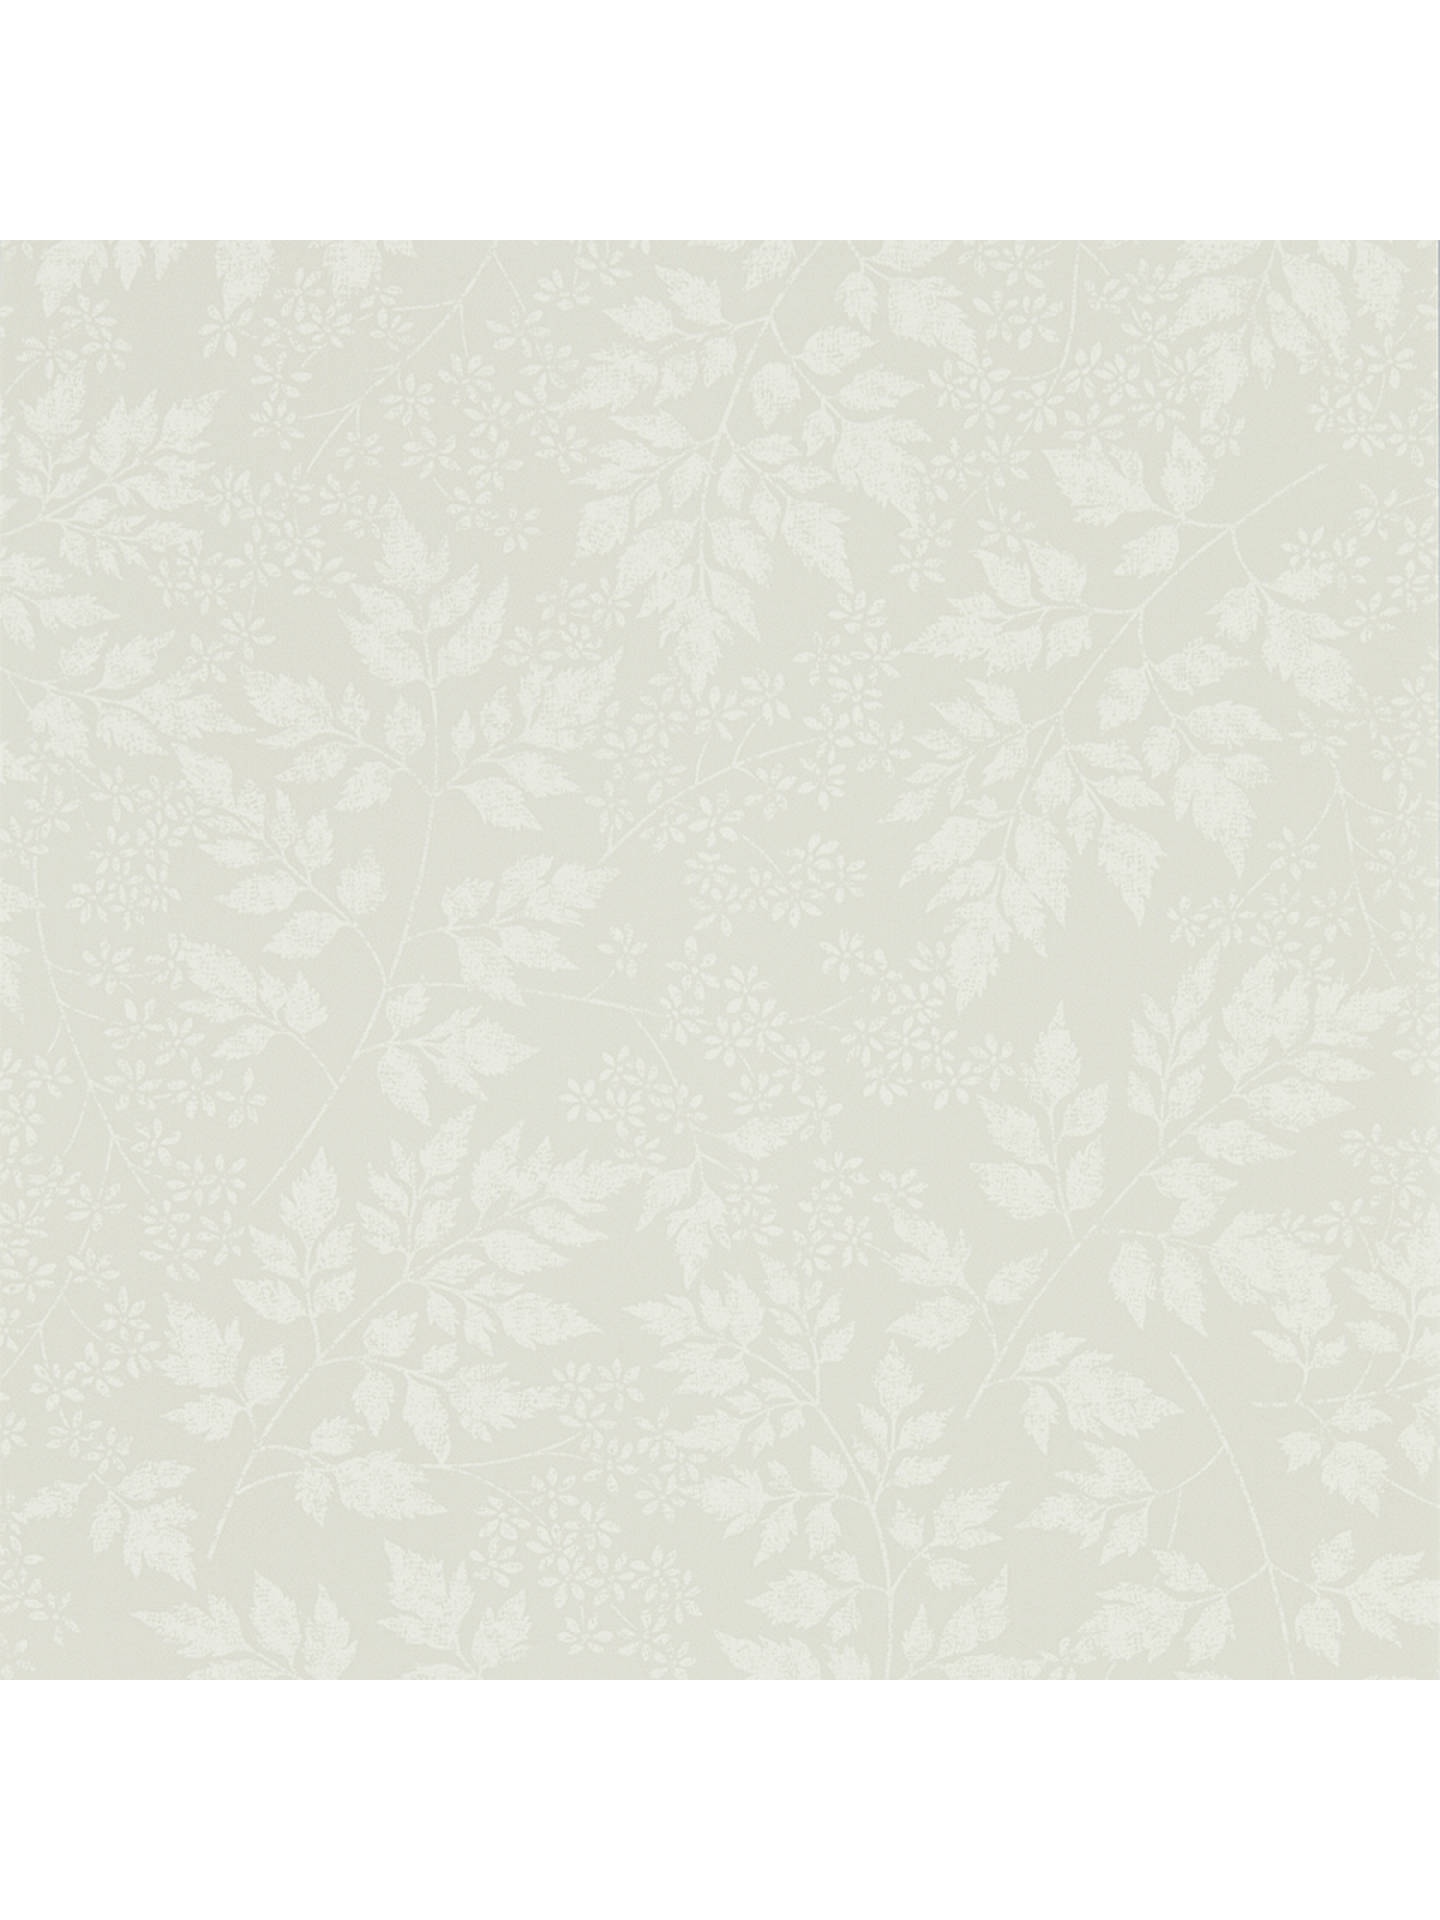 Buy Sanderson Home Spring Leaves Wallpaper DHPO216371 Online at johnlewis.com